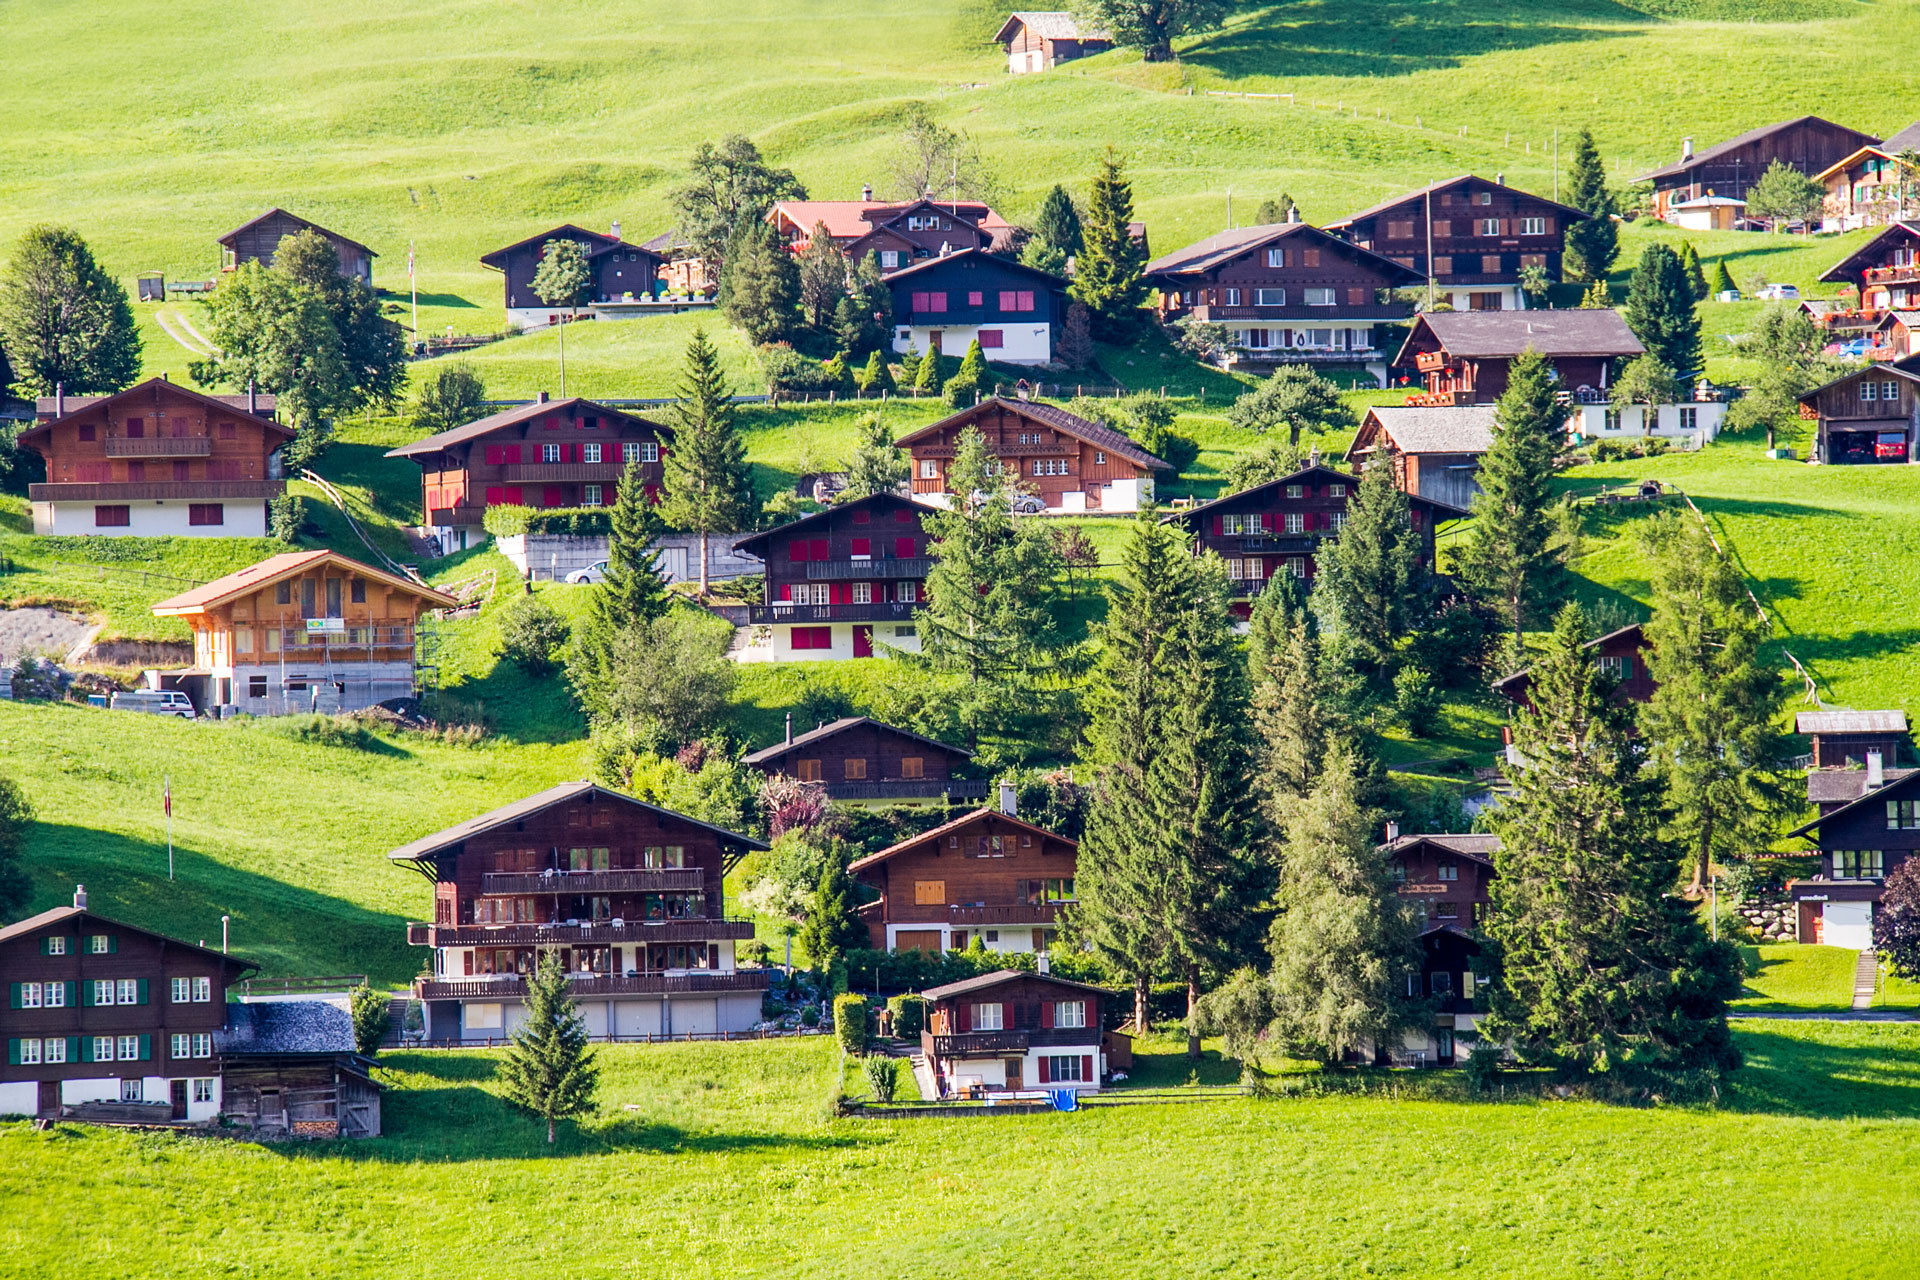 Grindelwald-Village-in-Switzerland.jpg